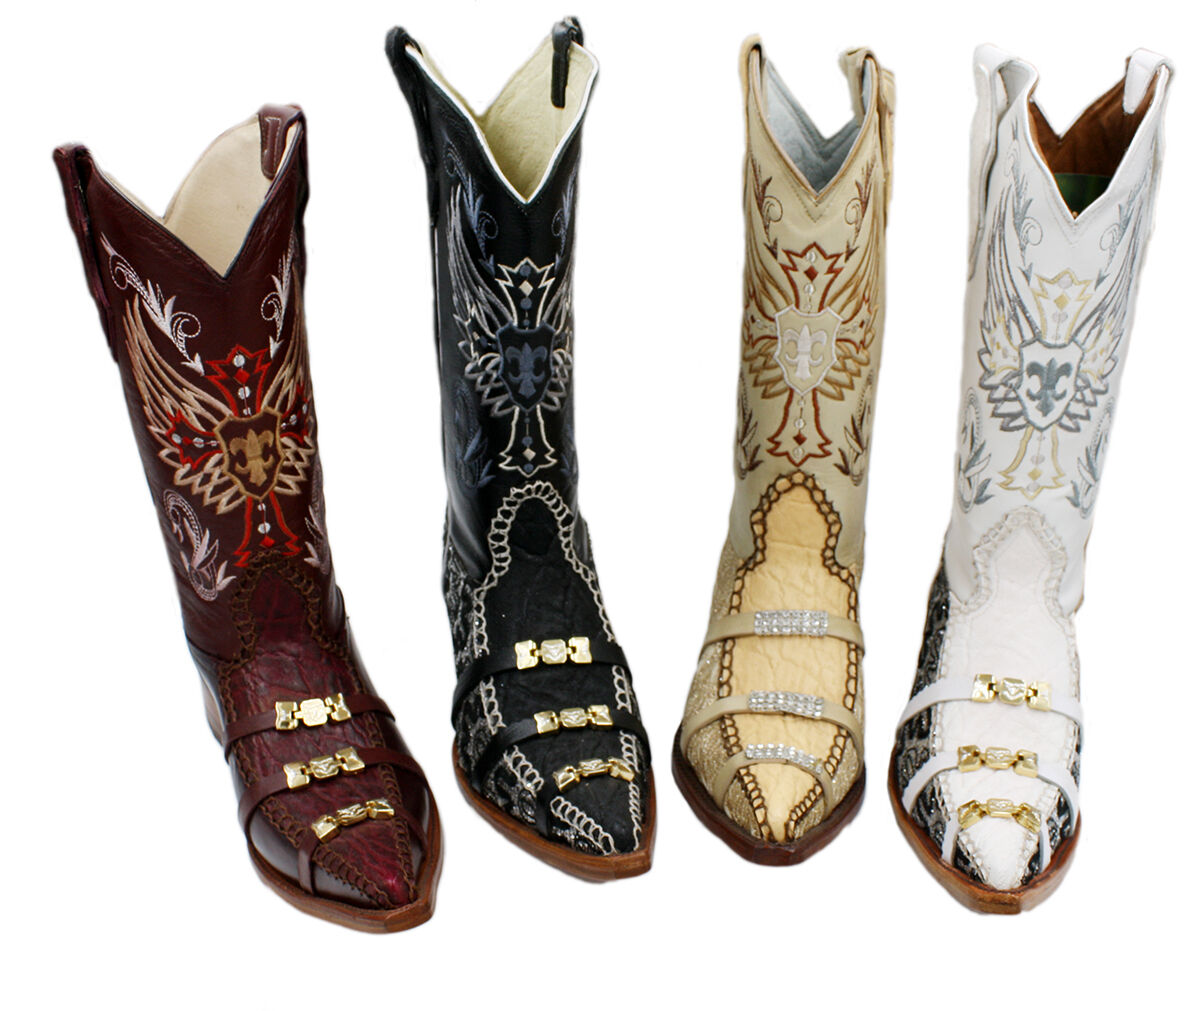 Uomo Genuine Leather Cowboy Boots With Design Style 6001